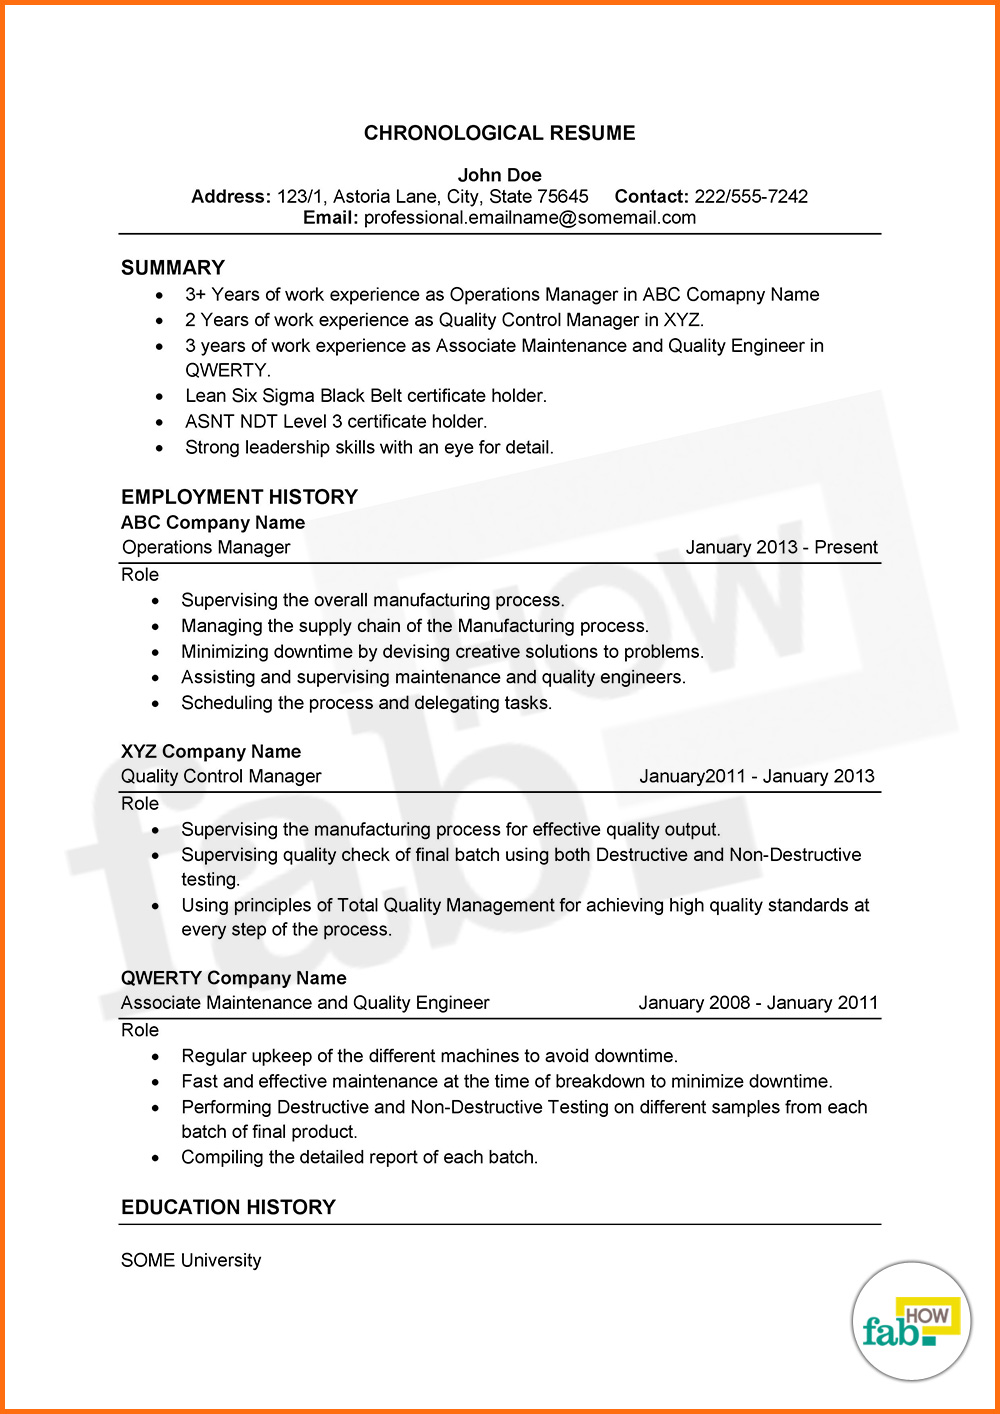 Use this advice to make your r. How to Make an Outstanding Resume (Get Free Samples)